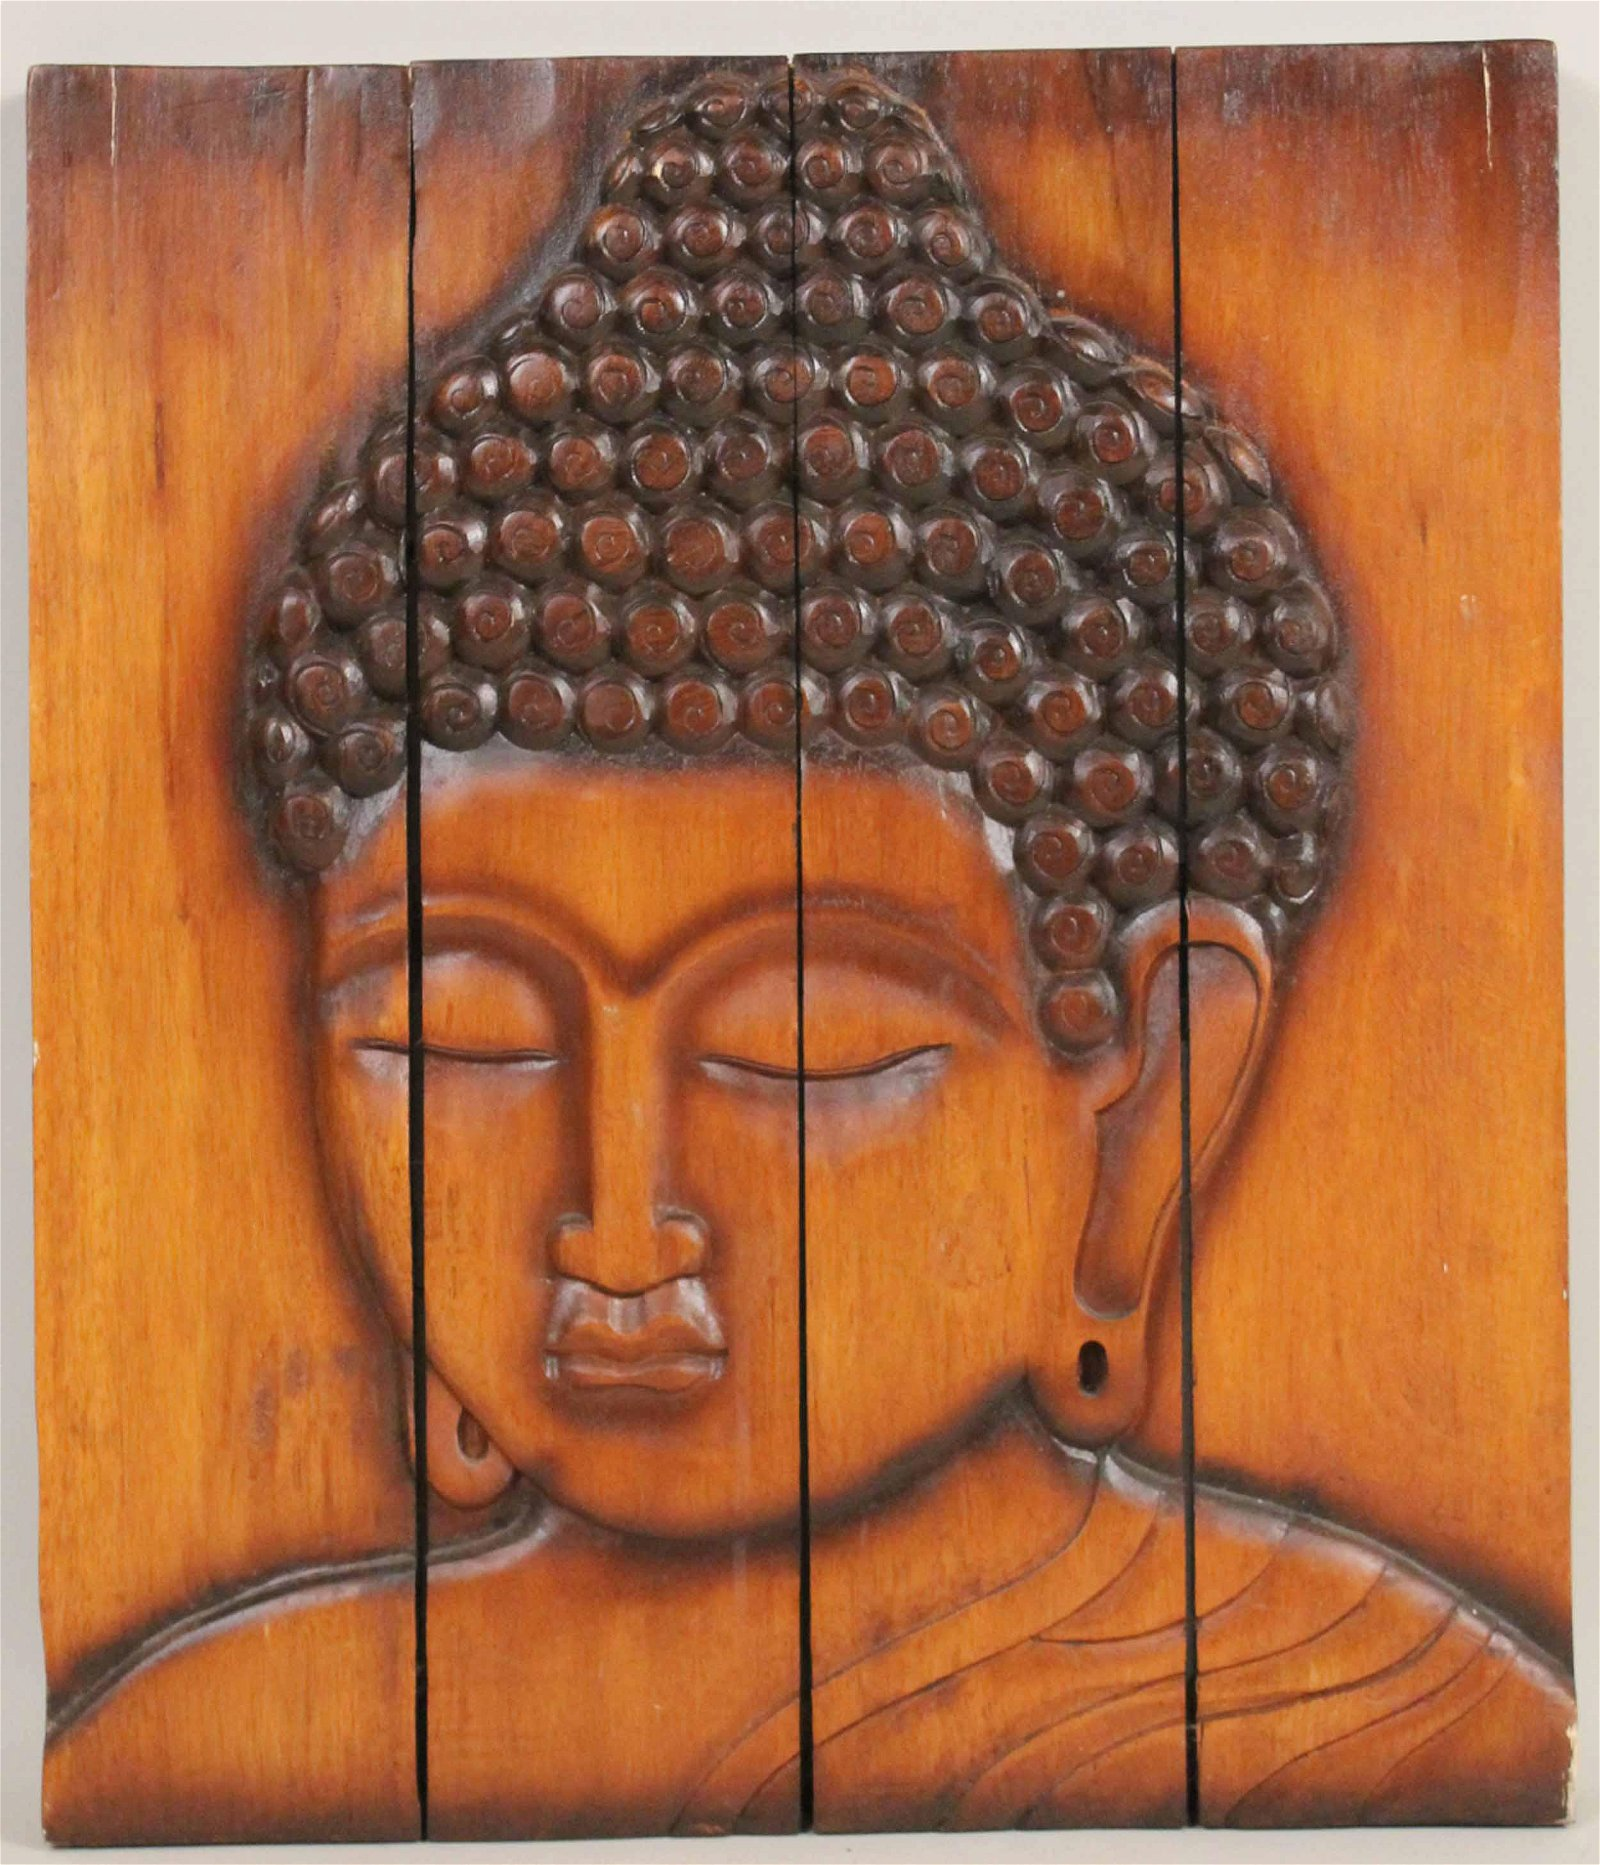 Carved Wood Plaque of a Deity Head